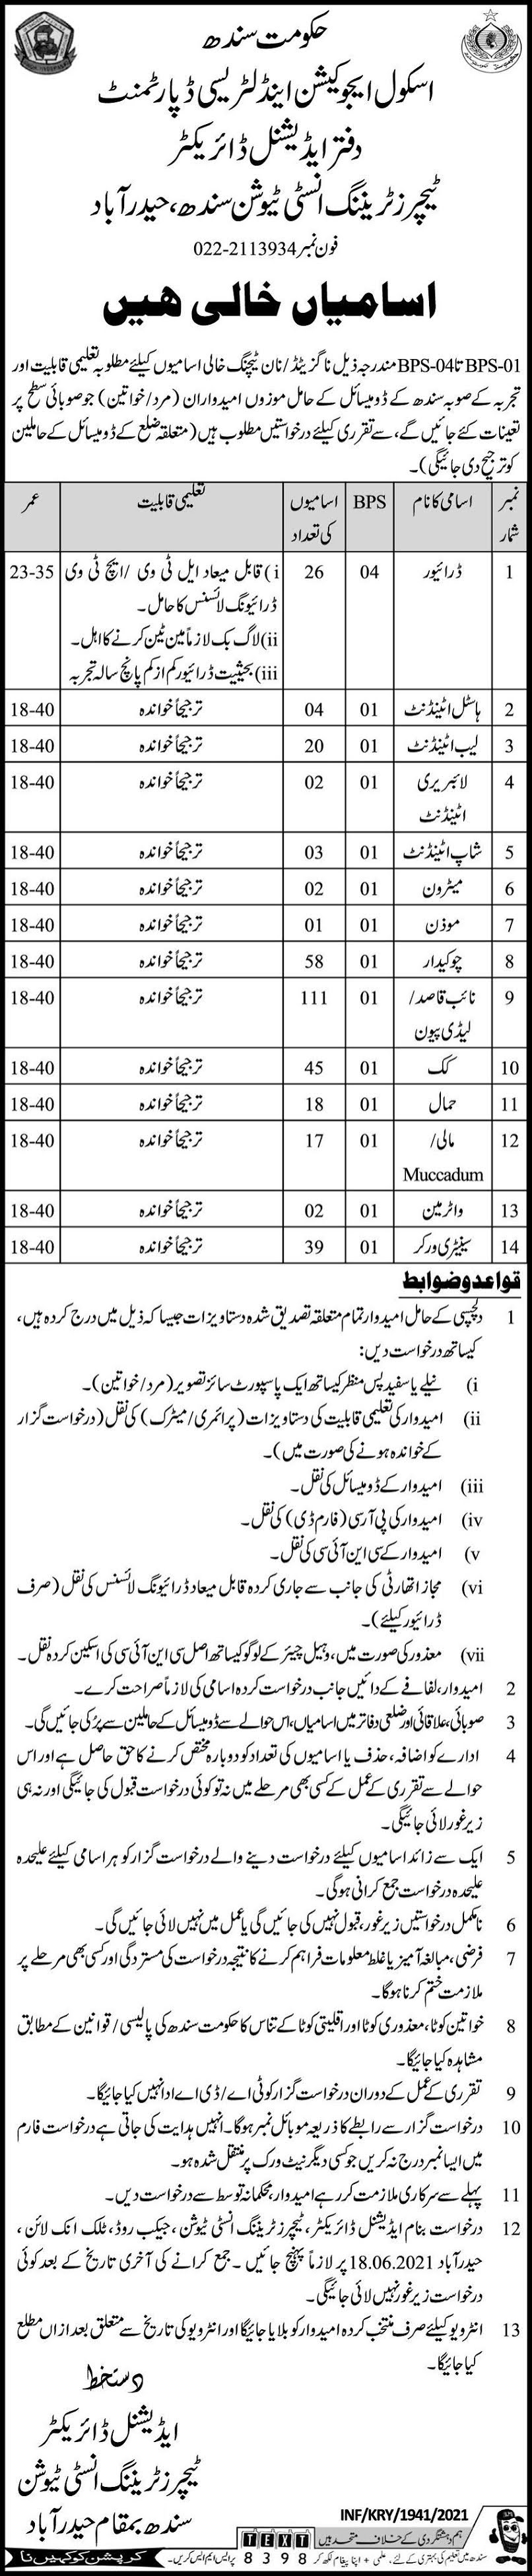 330 Posts Teachers Training Institute Sindh School Education And Literacy Department Hyderabad Jobs 2021